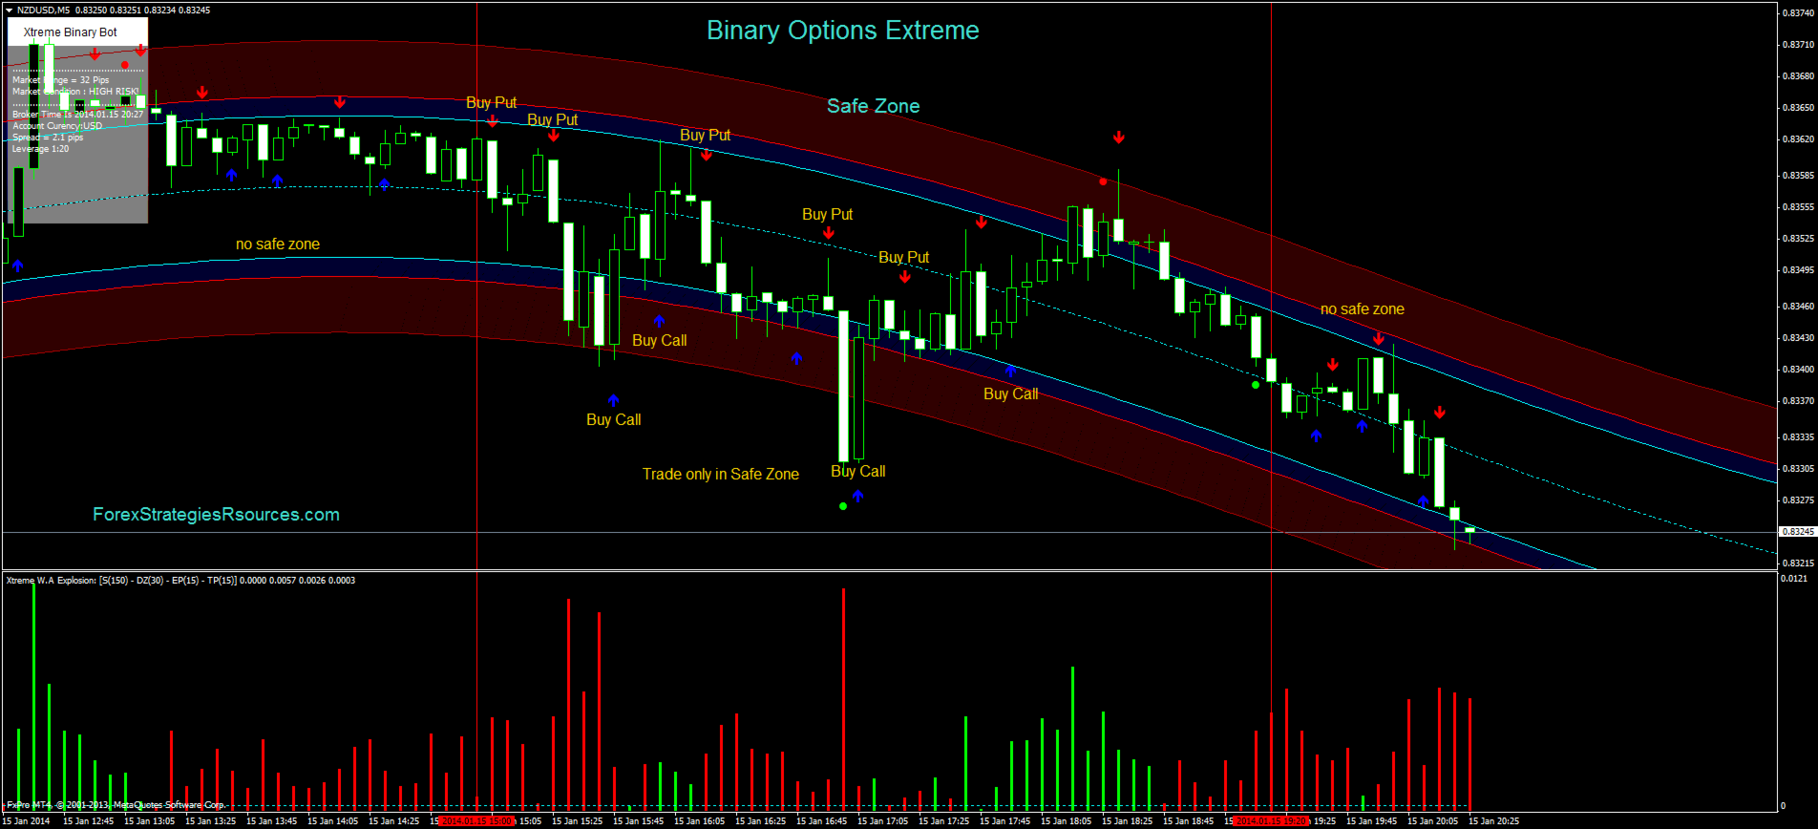 fx 60s binary options system download